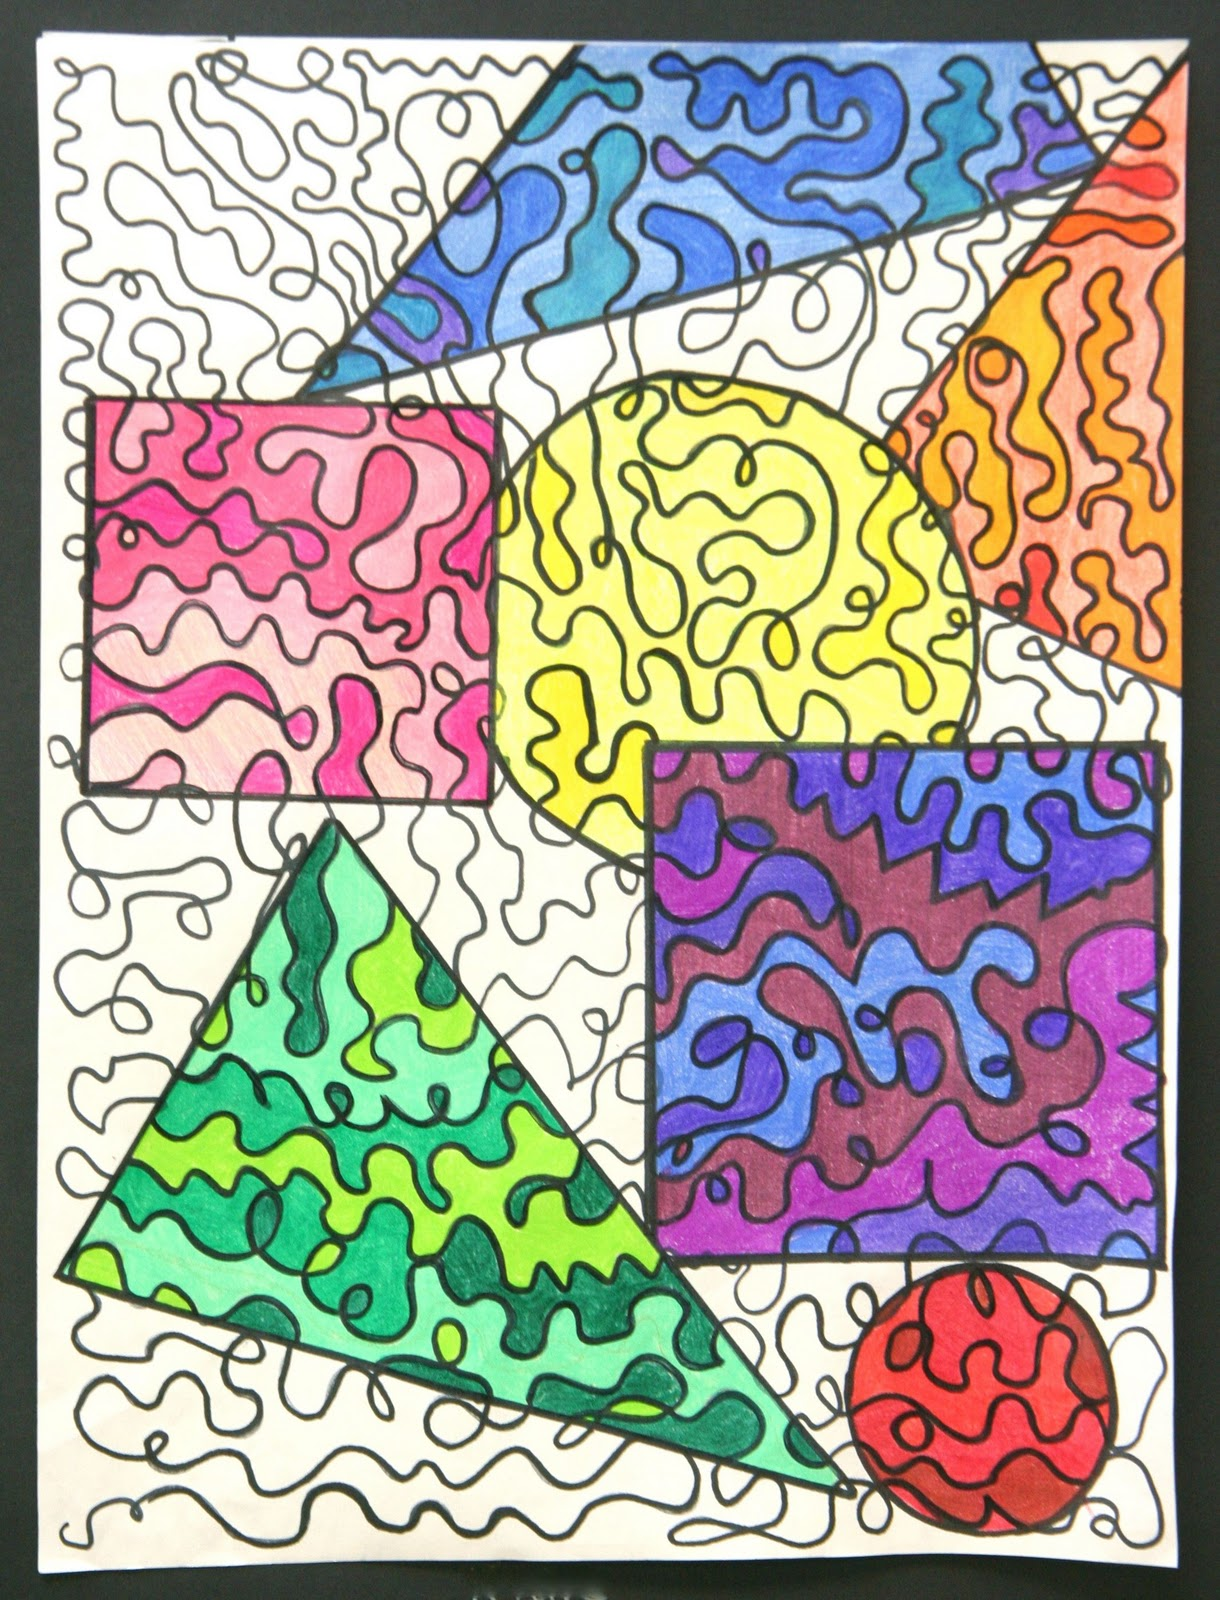 Next We Traced The Shapes Over Our Drawings And Colored In Each Shape With A Monochromatic Color Scheme Here Are Some Results